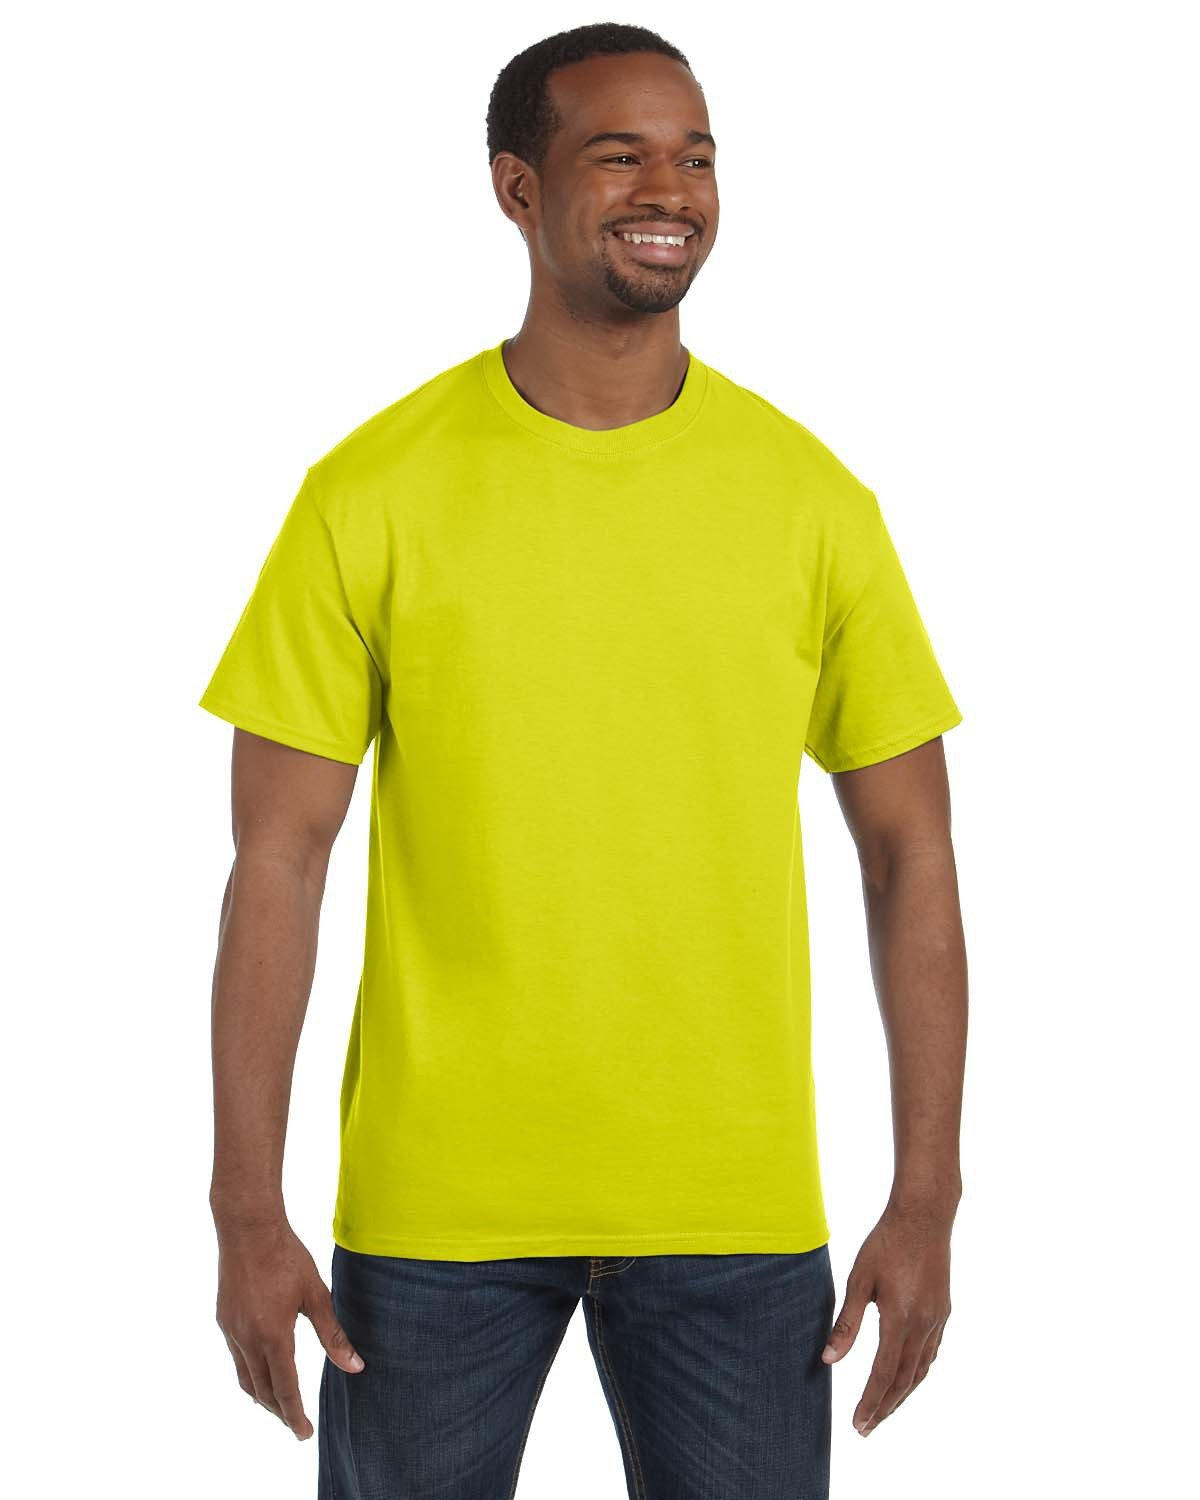 Hanes Men's Authentic-T T-Shirt SAFETY GREEN